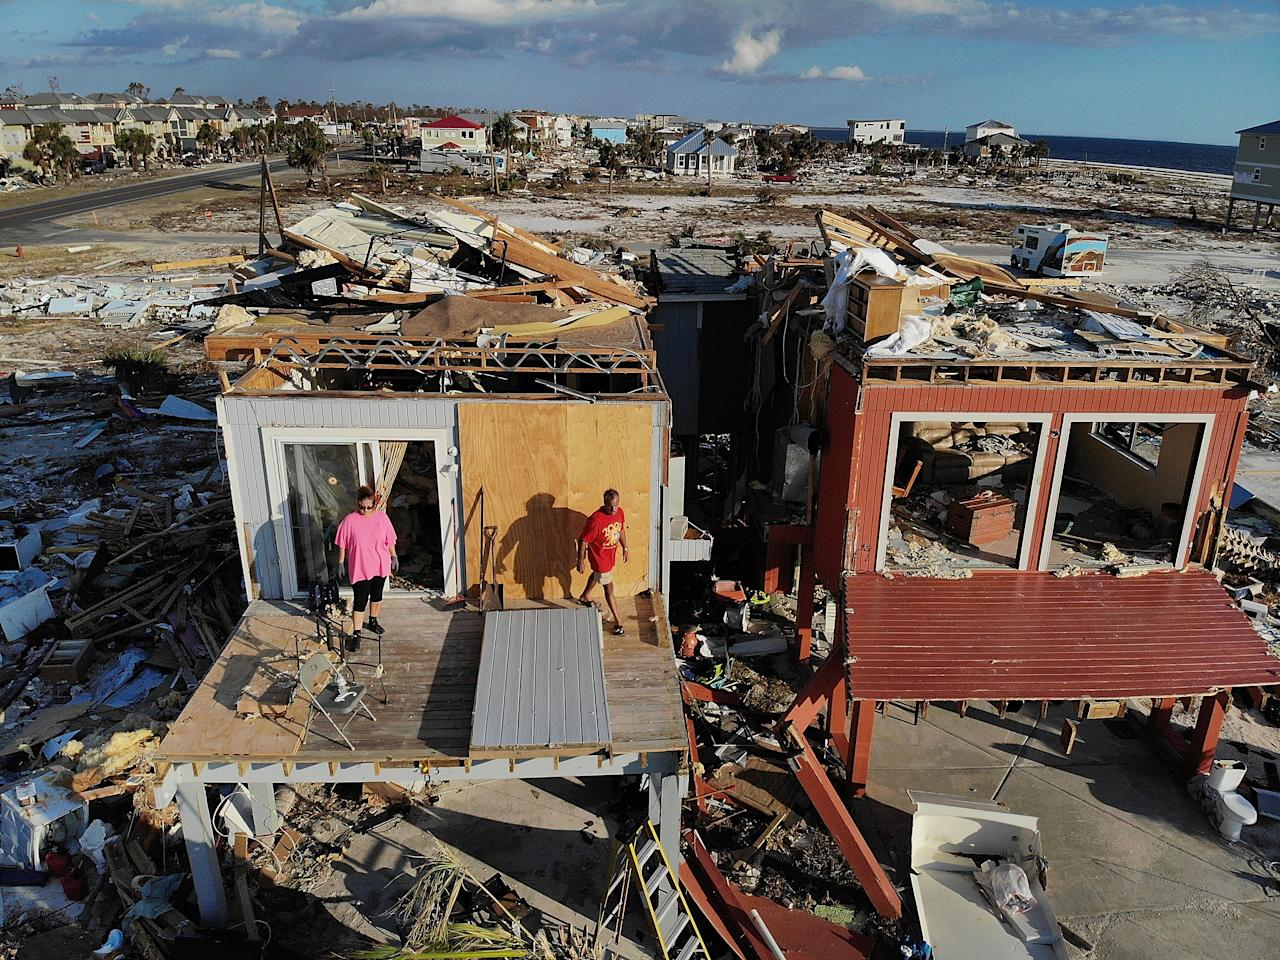 <p>Bela (L) and Jaques Sebastiao begin the process of cleaning up their home after it was heavily damaged by Hurricane Michael, on Oct. 17, 2018, in Mexico Beach, Fla. (Photo: Joe Raedle/Getty Images) </p>